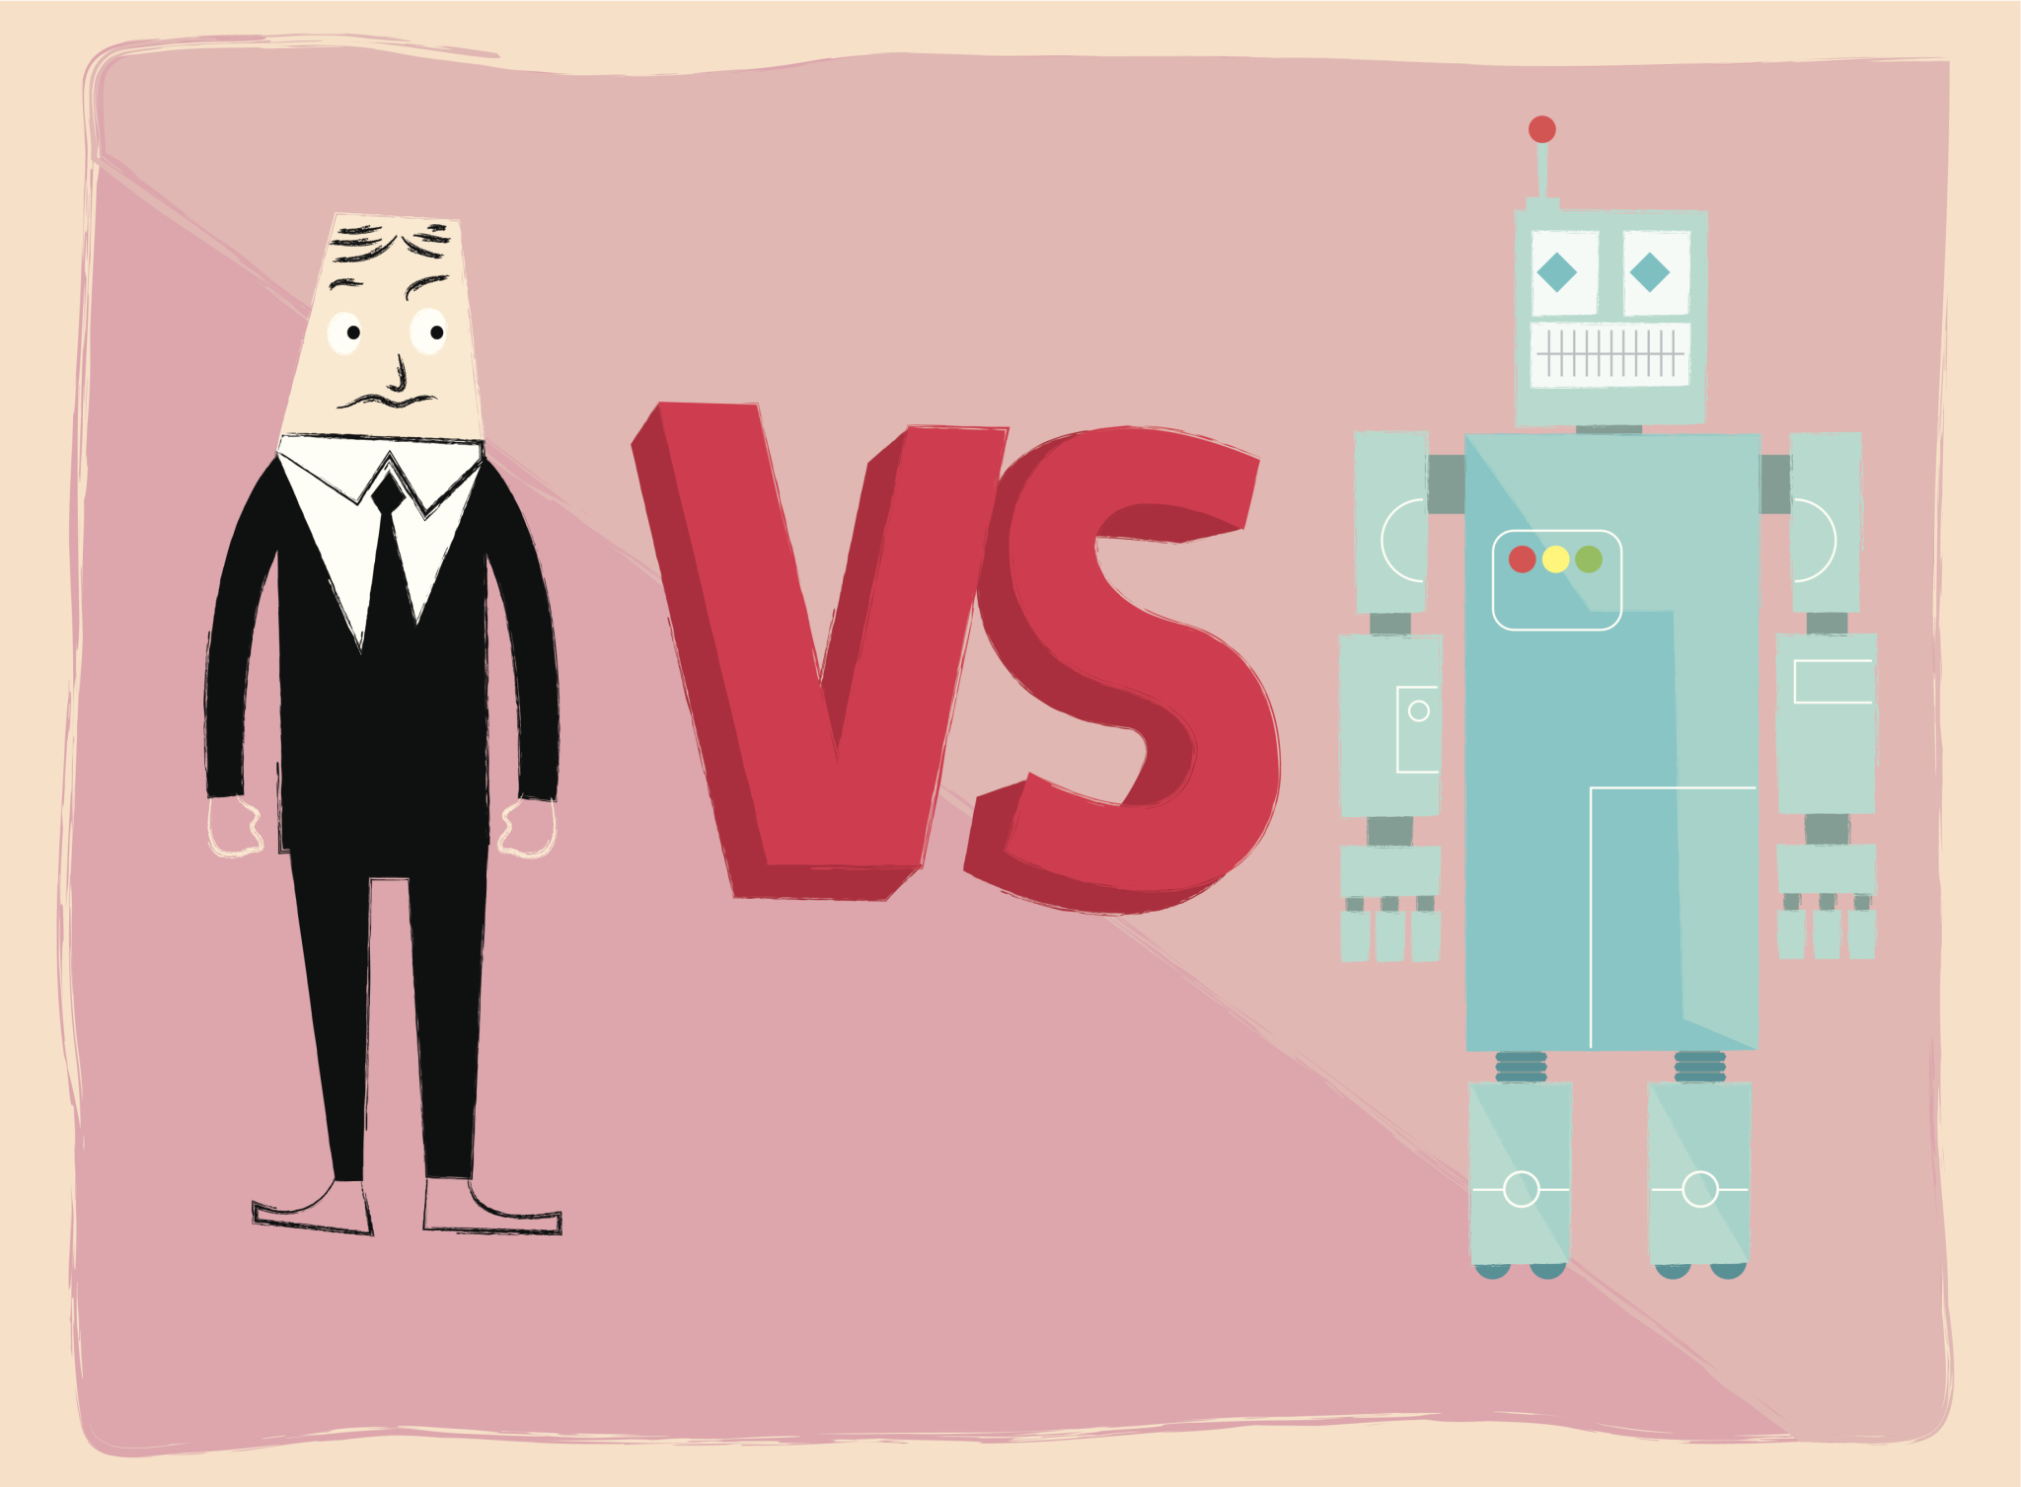 robots and automation